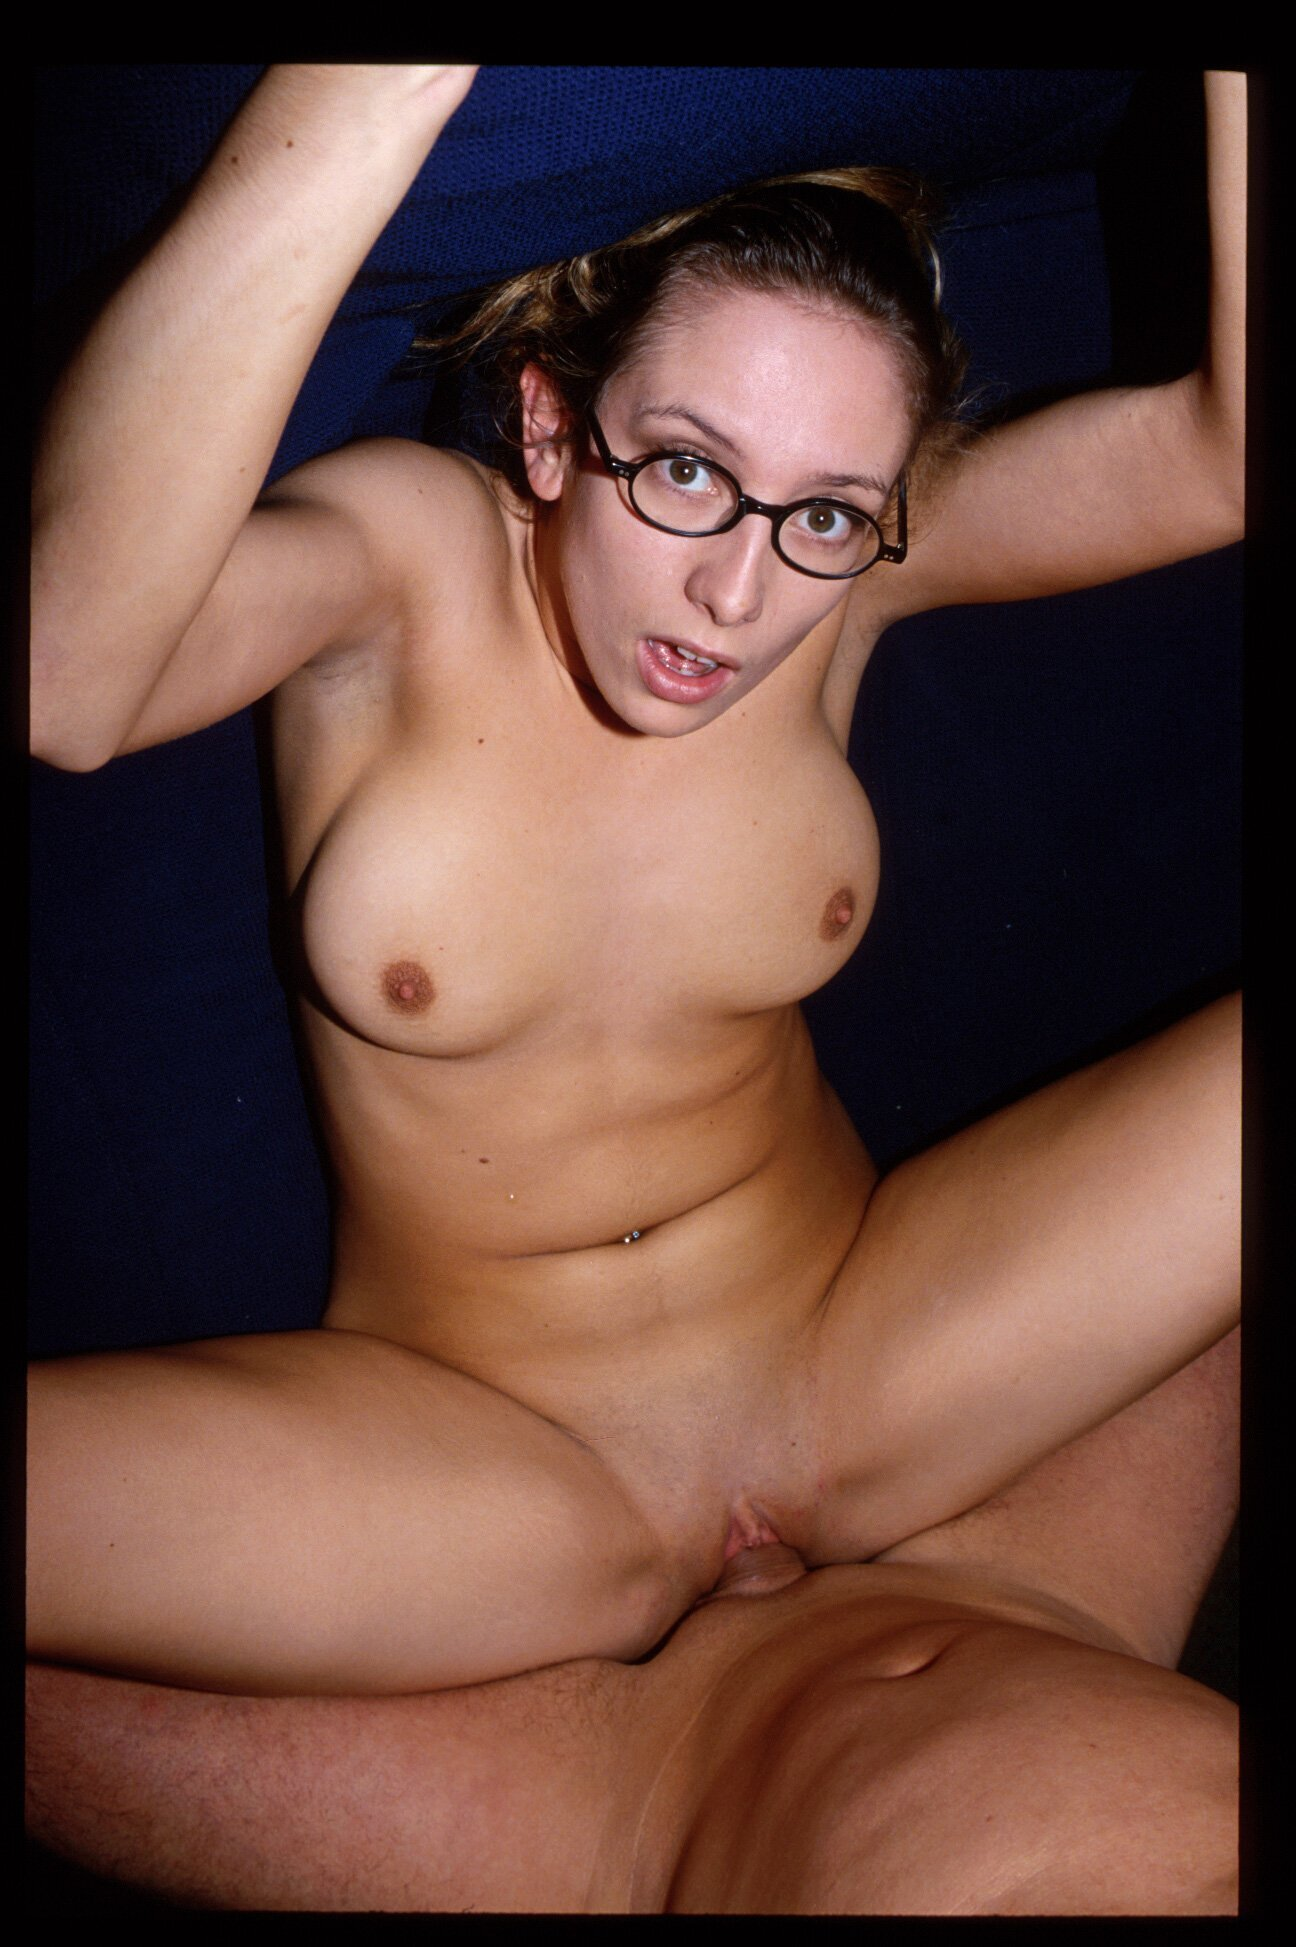 Naked Is Fun 37